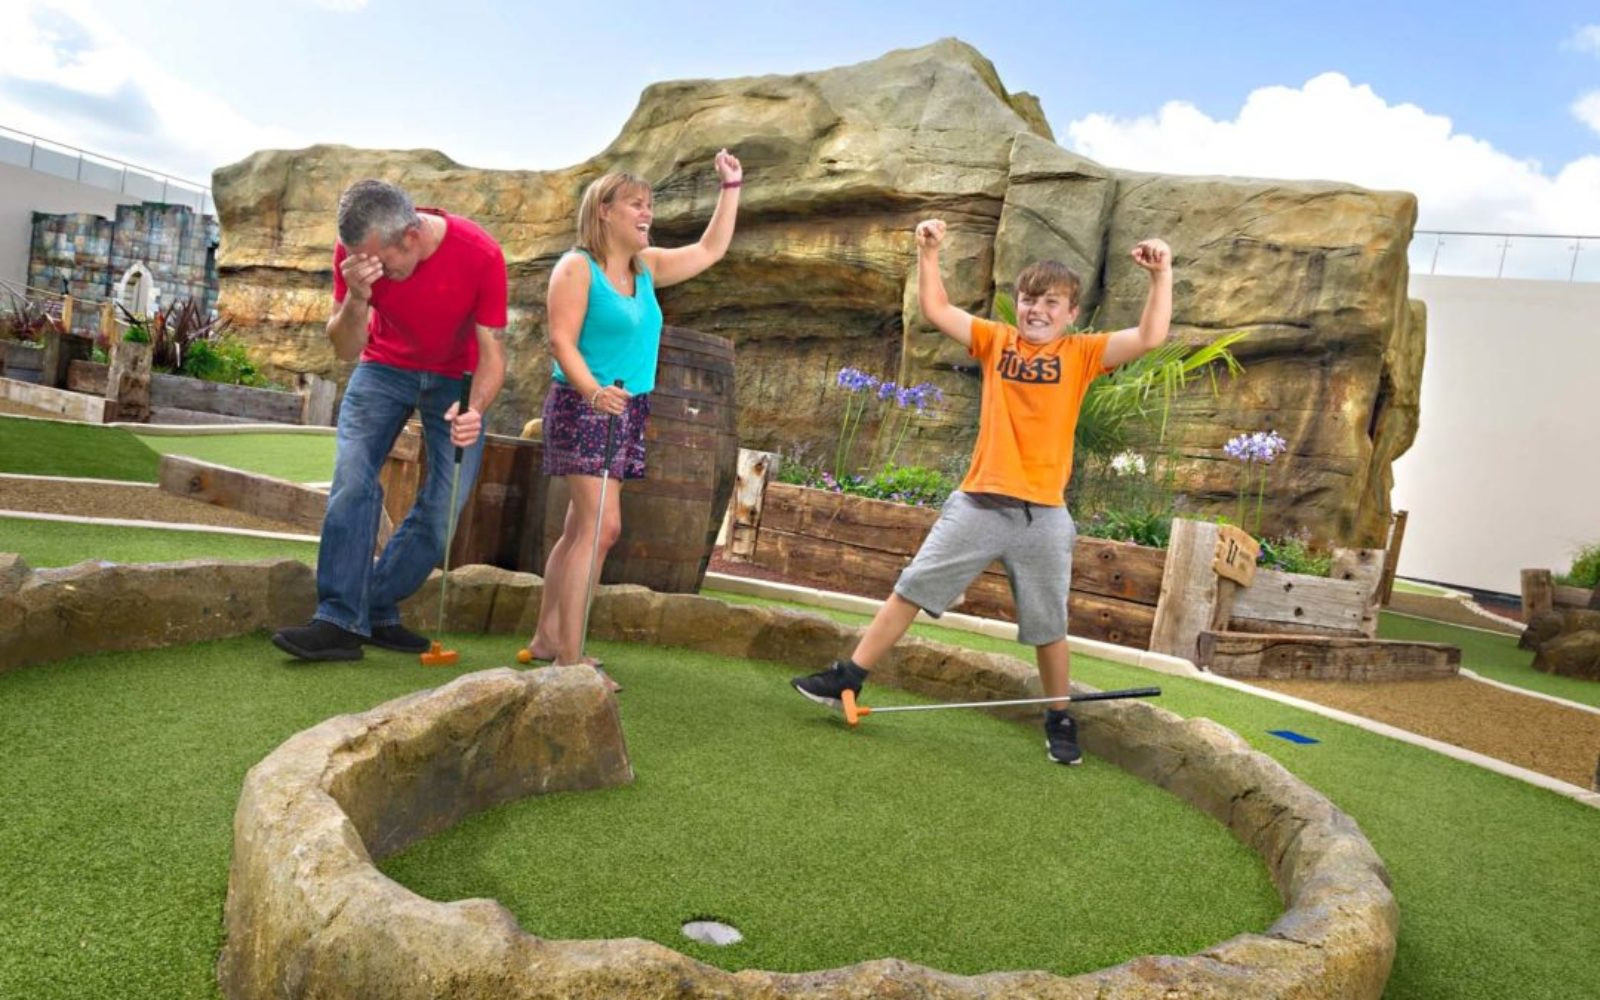 A flurry of emotions as a child makes a shot on the crazy golf course course